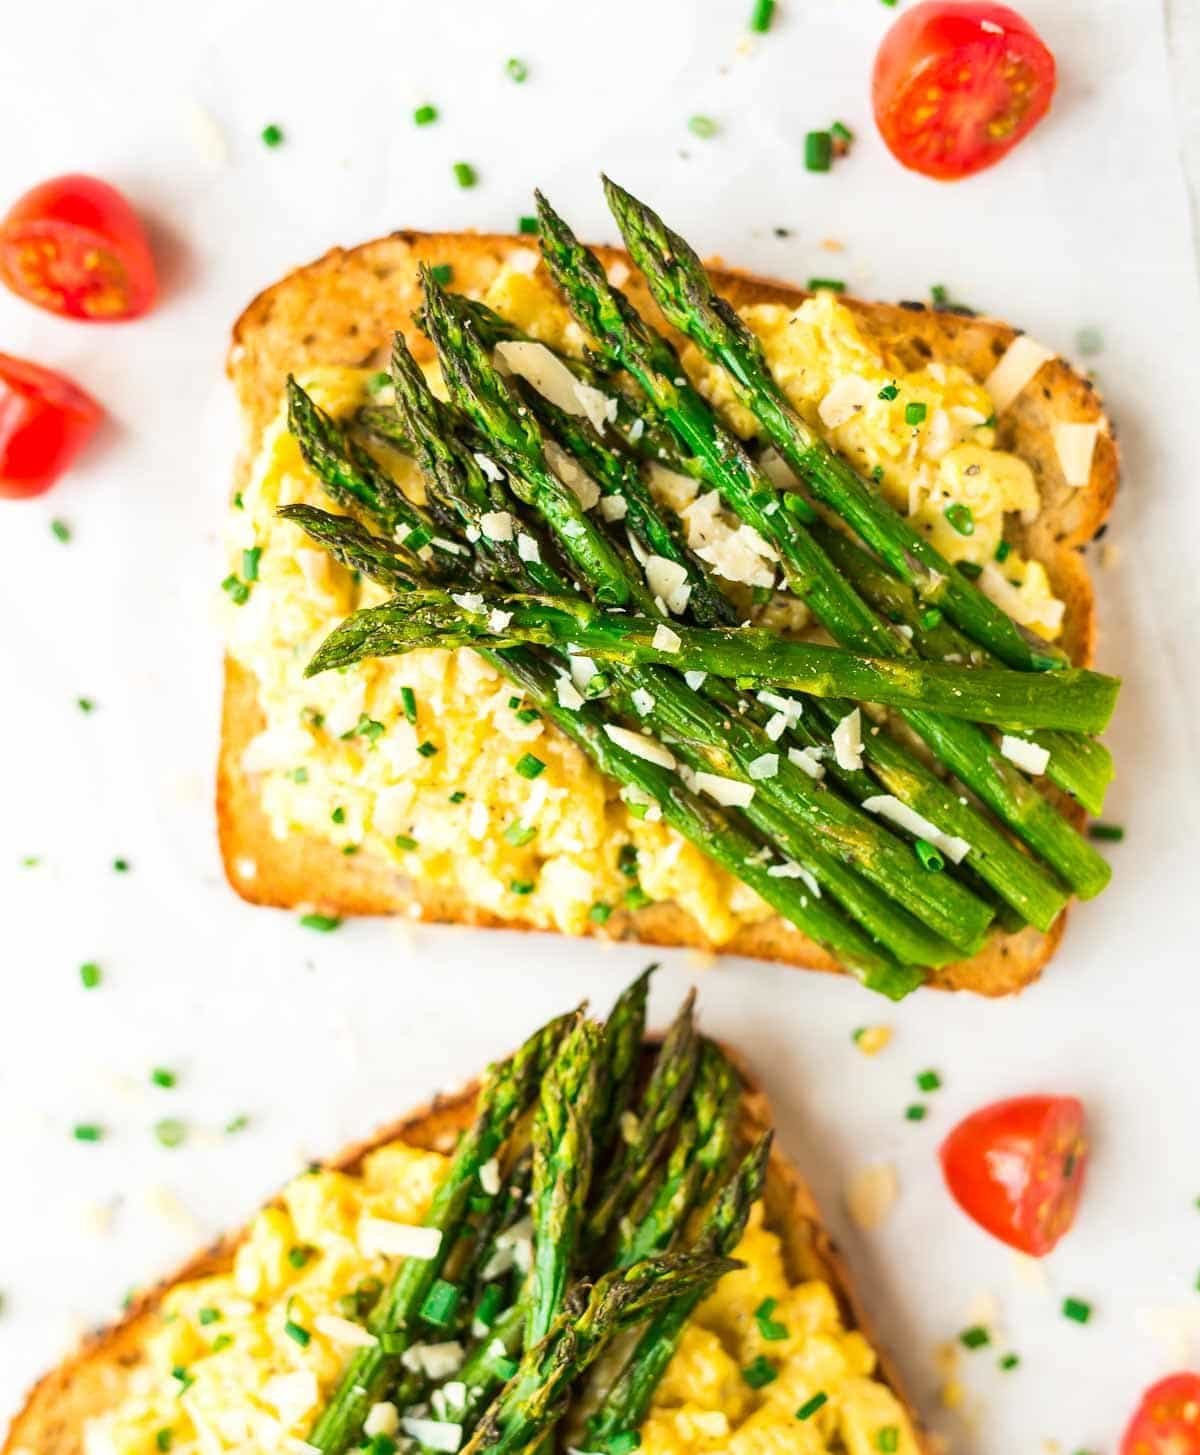 Asparagus and Creamy Scrambled Egg Toasts – Quick, healthy, and high protein. Great for a filling vegetarian breakfast or dinner! Recipe at wellplated.com | @wellplated